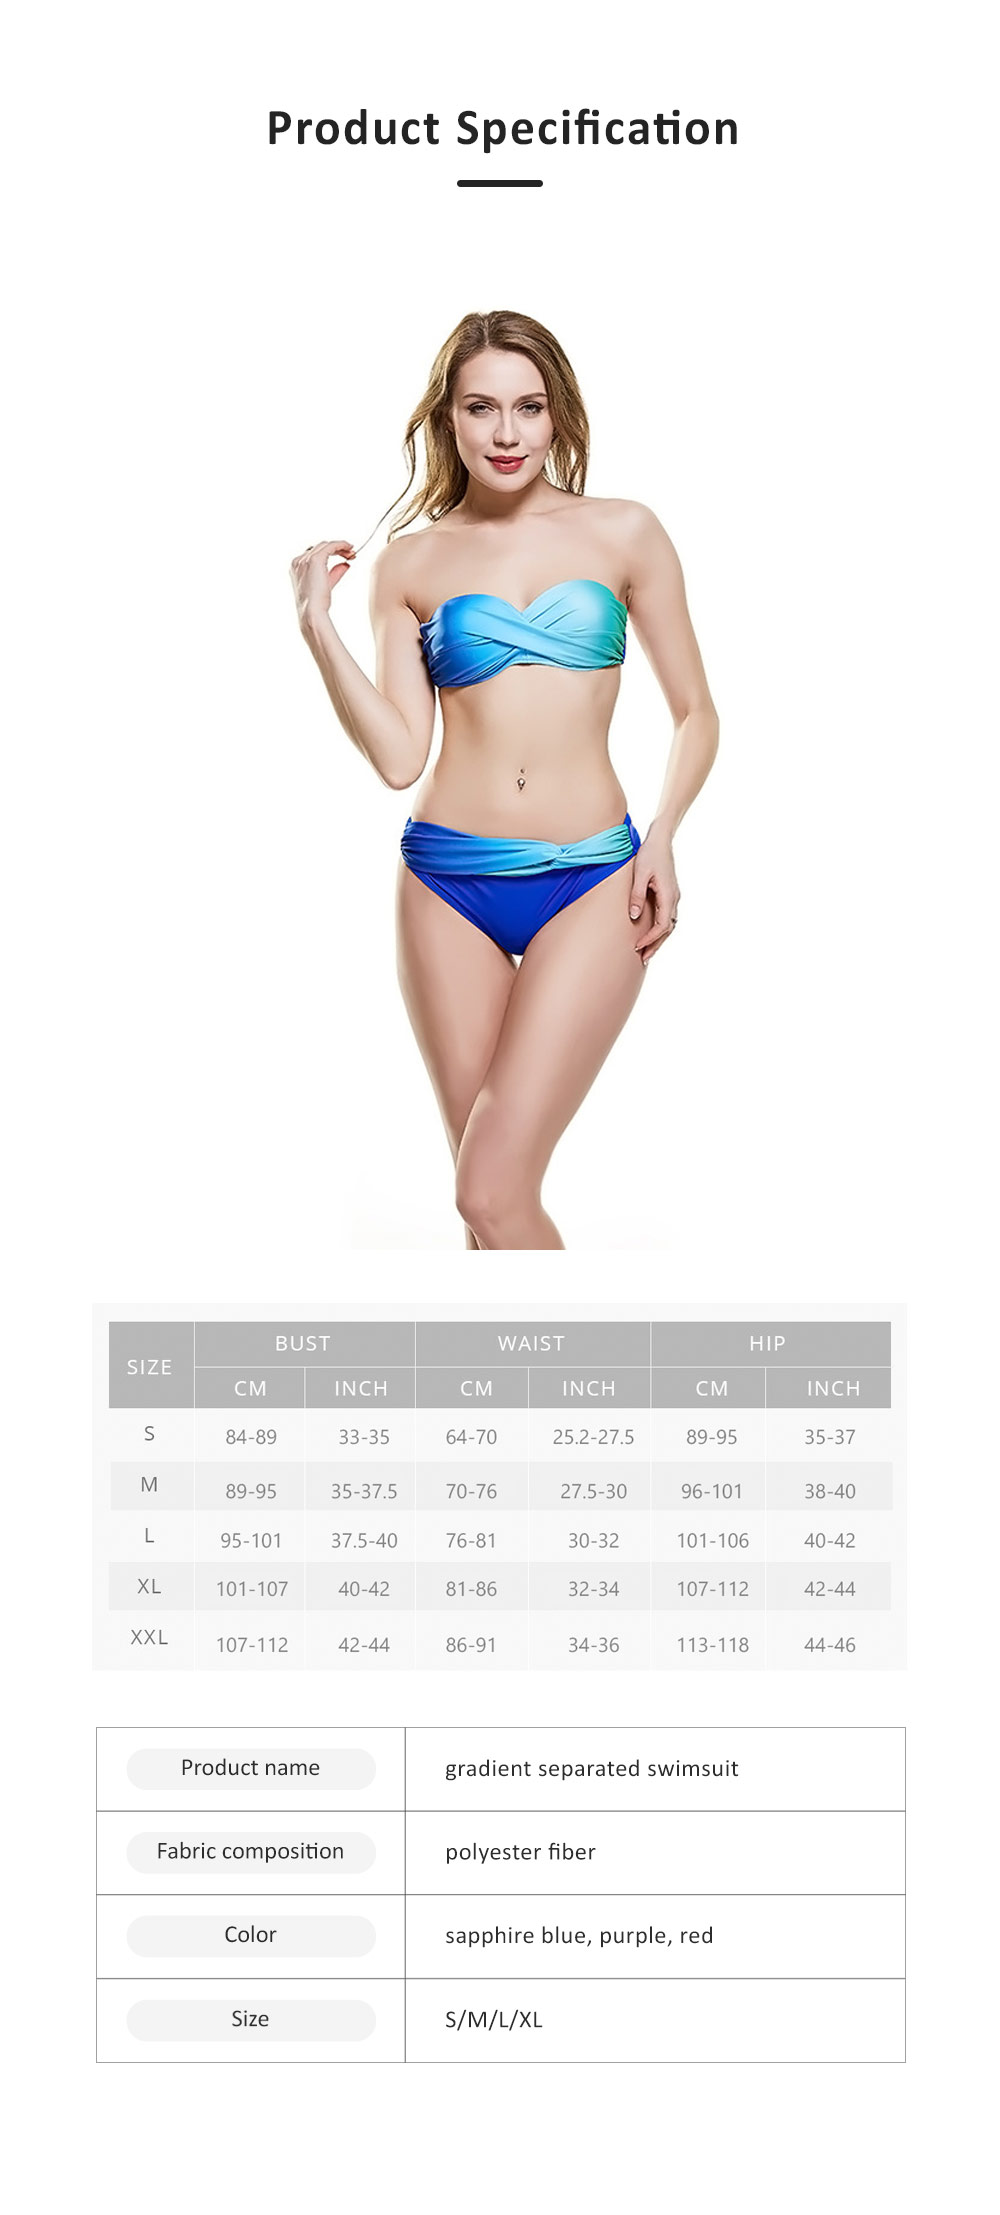 Gradient Separated Swimsuit for Women, Polyester Fiber Two-piece Swimwear, Detachable Shoulder Strap Sexy Bikini 6